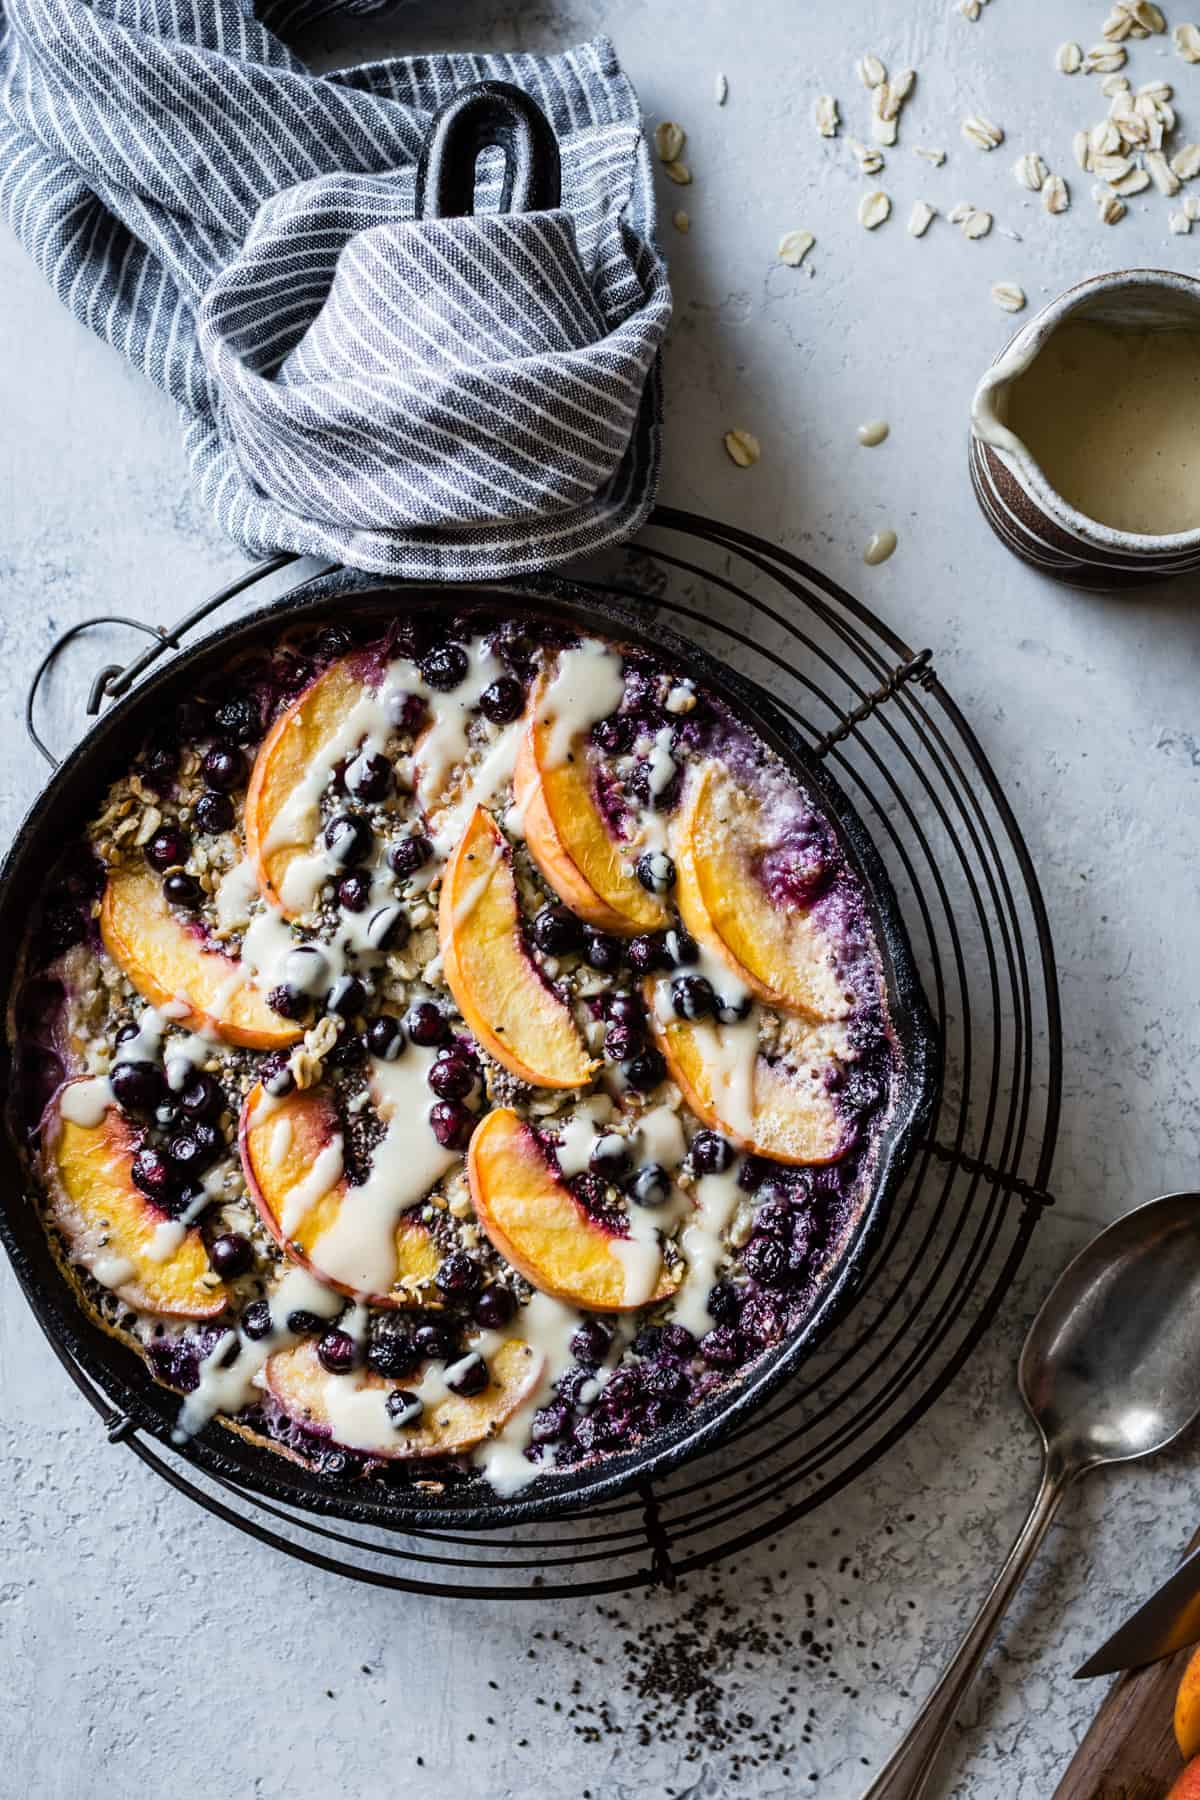 Super Seedy Vegan Baked Oatmeal with Peaches and Huckleberries {gluten-free & dairy-free}